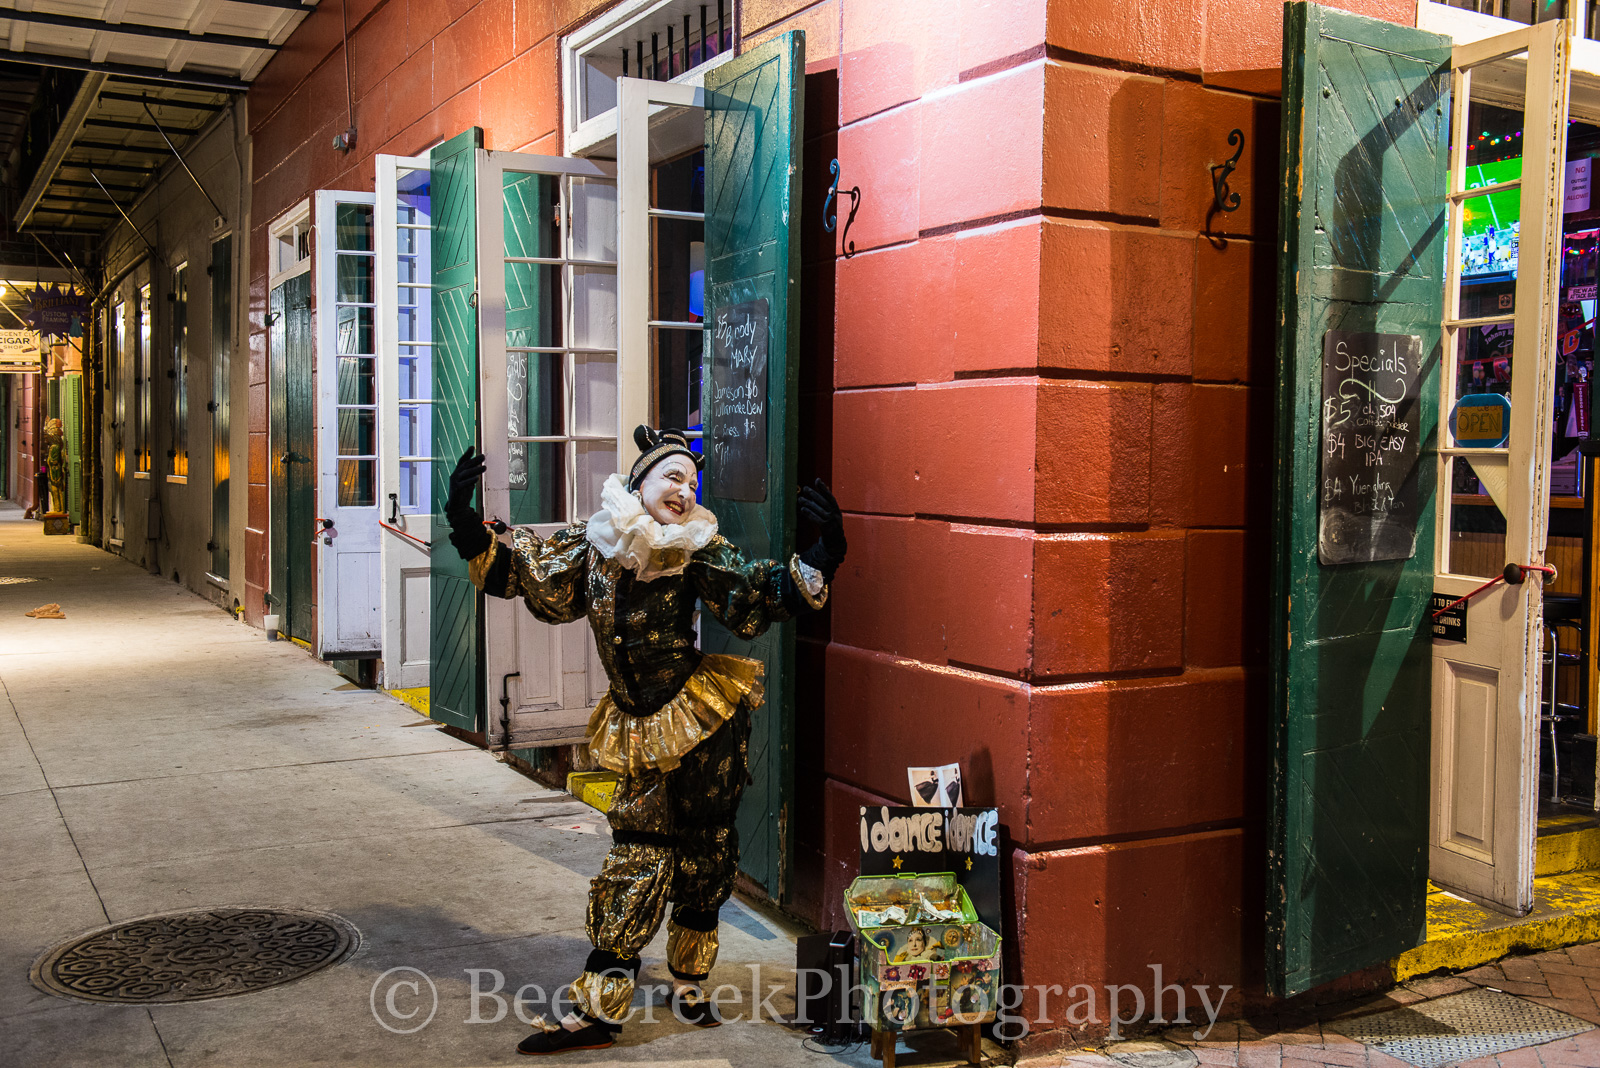 Bourbon Street Mime,  Bourbon Street, French Quarter, city, dance, lifestyle, mime, people, street scene, night, , New Orleans cityscapes, photo